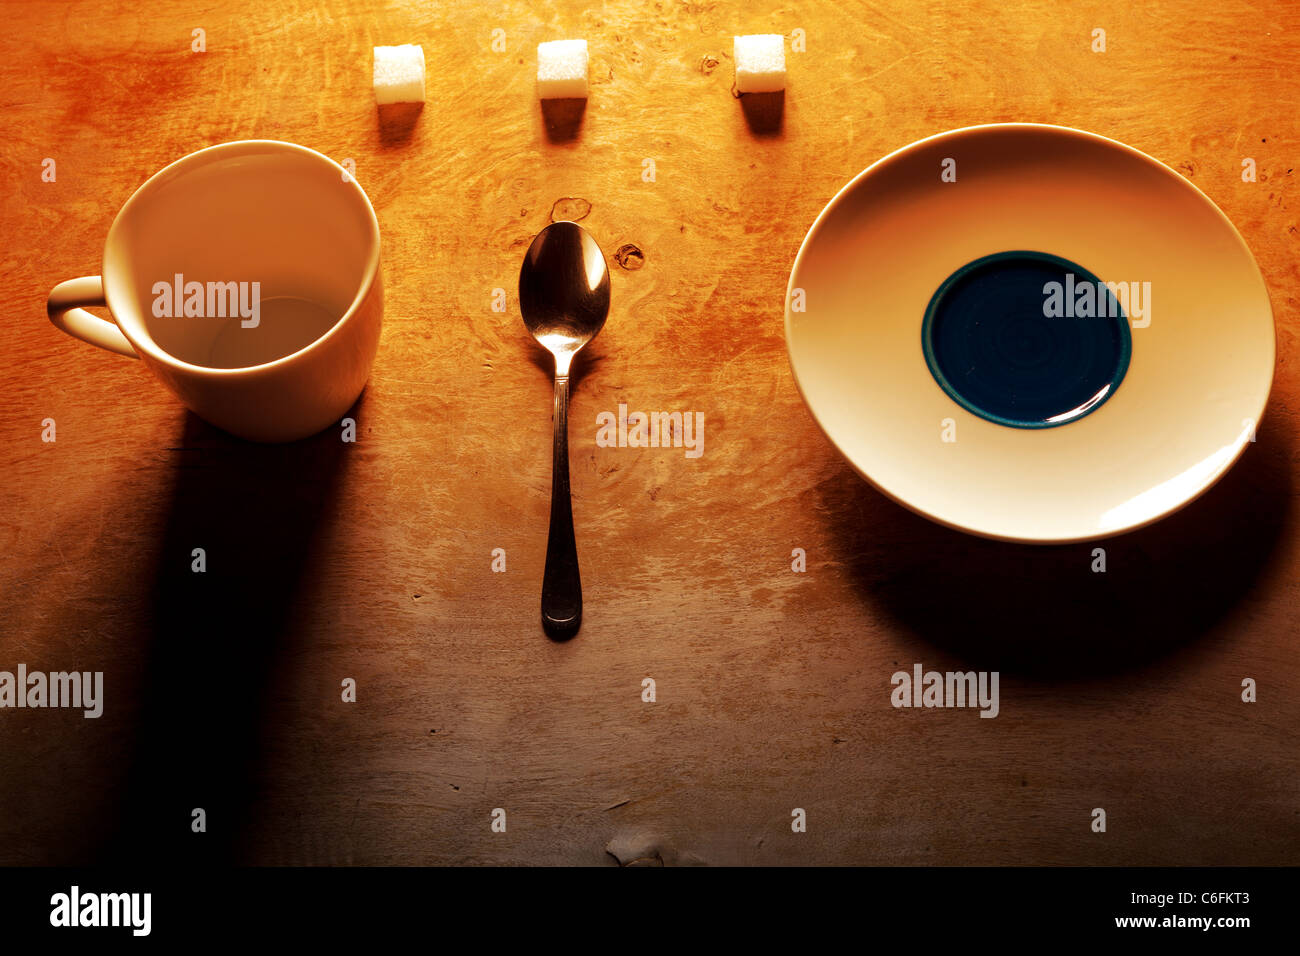 Arangement of divers things to drink coffee - Stock Image